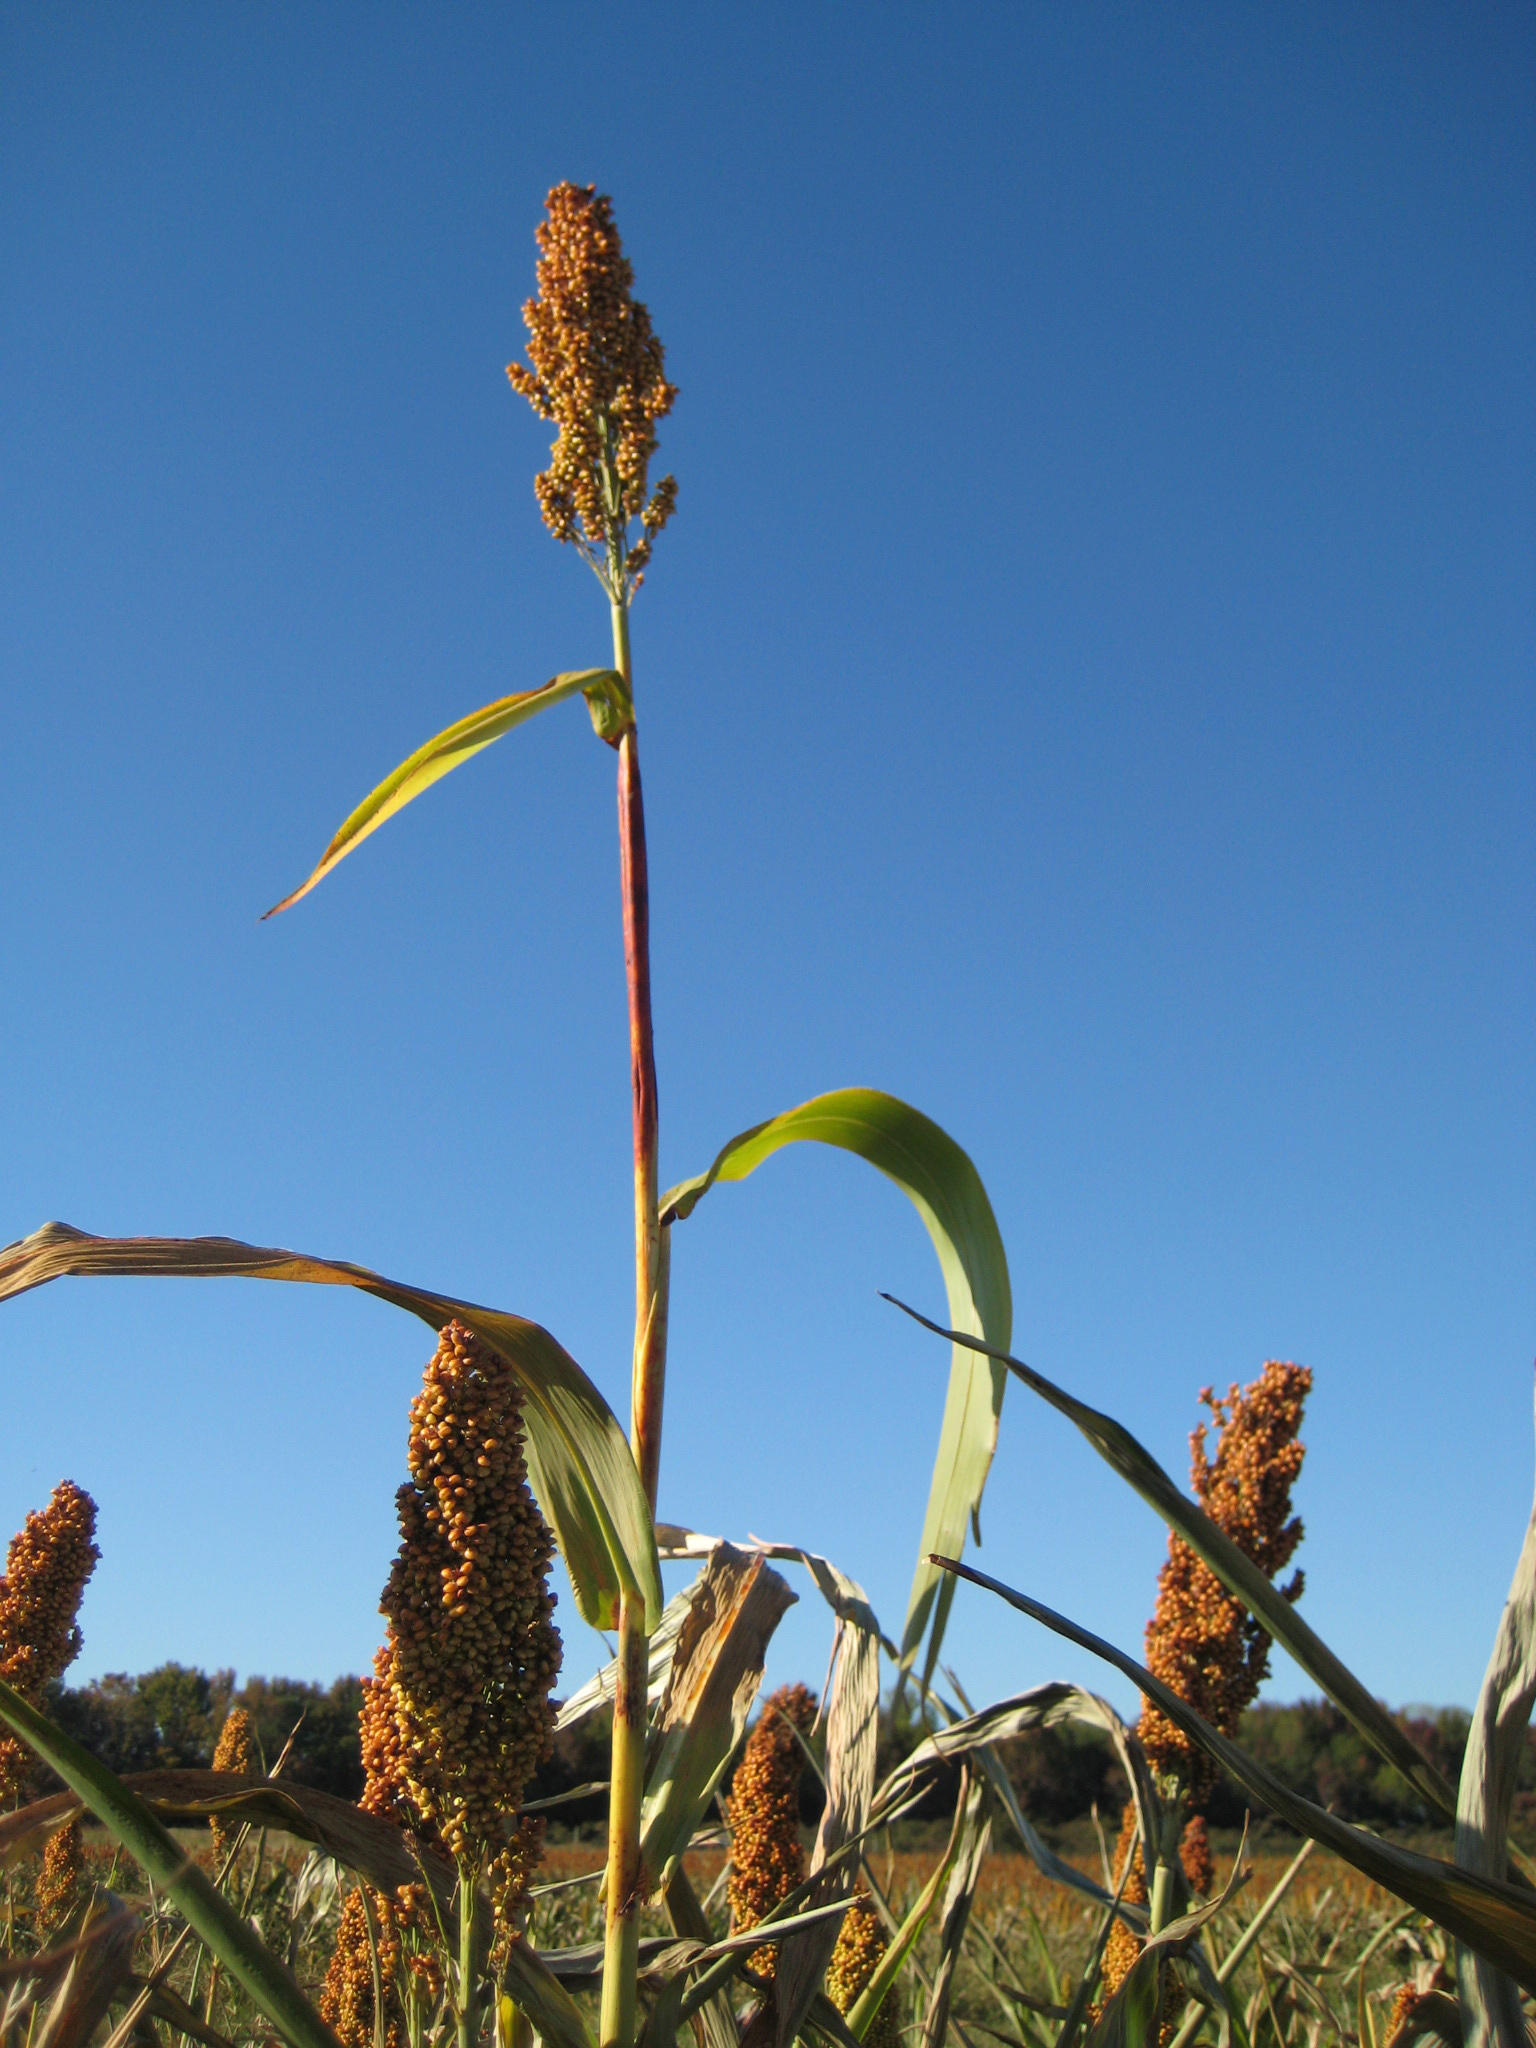 Sorghum plant growing in the field.